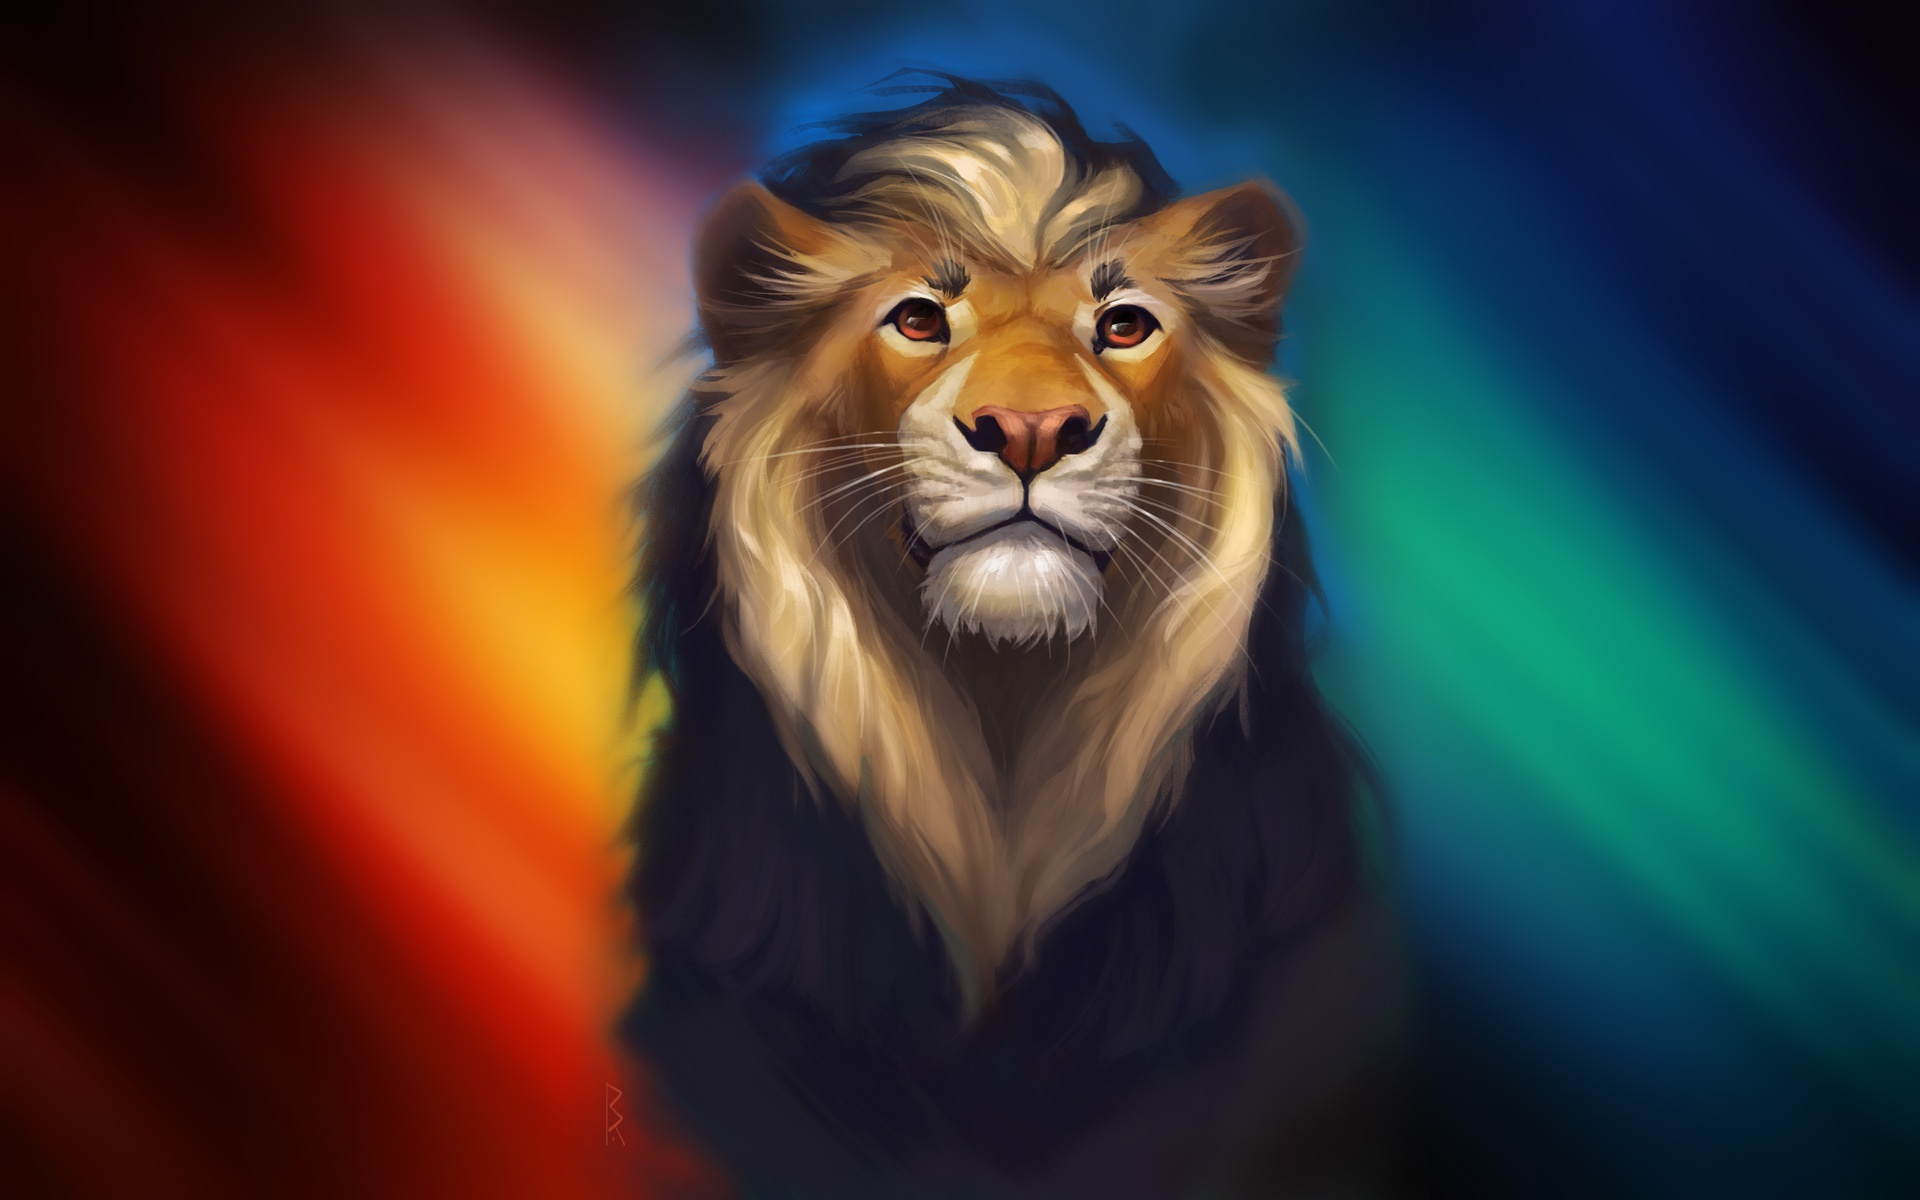 Lion Fantasy Colorful Art, HD Animals, 4k Wallpapers